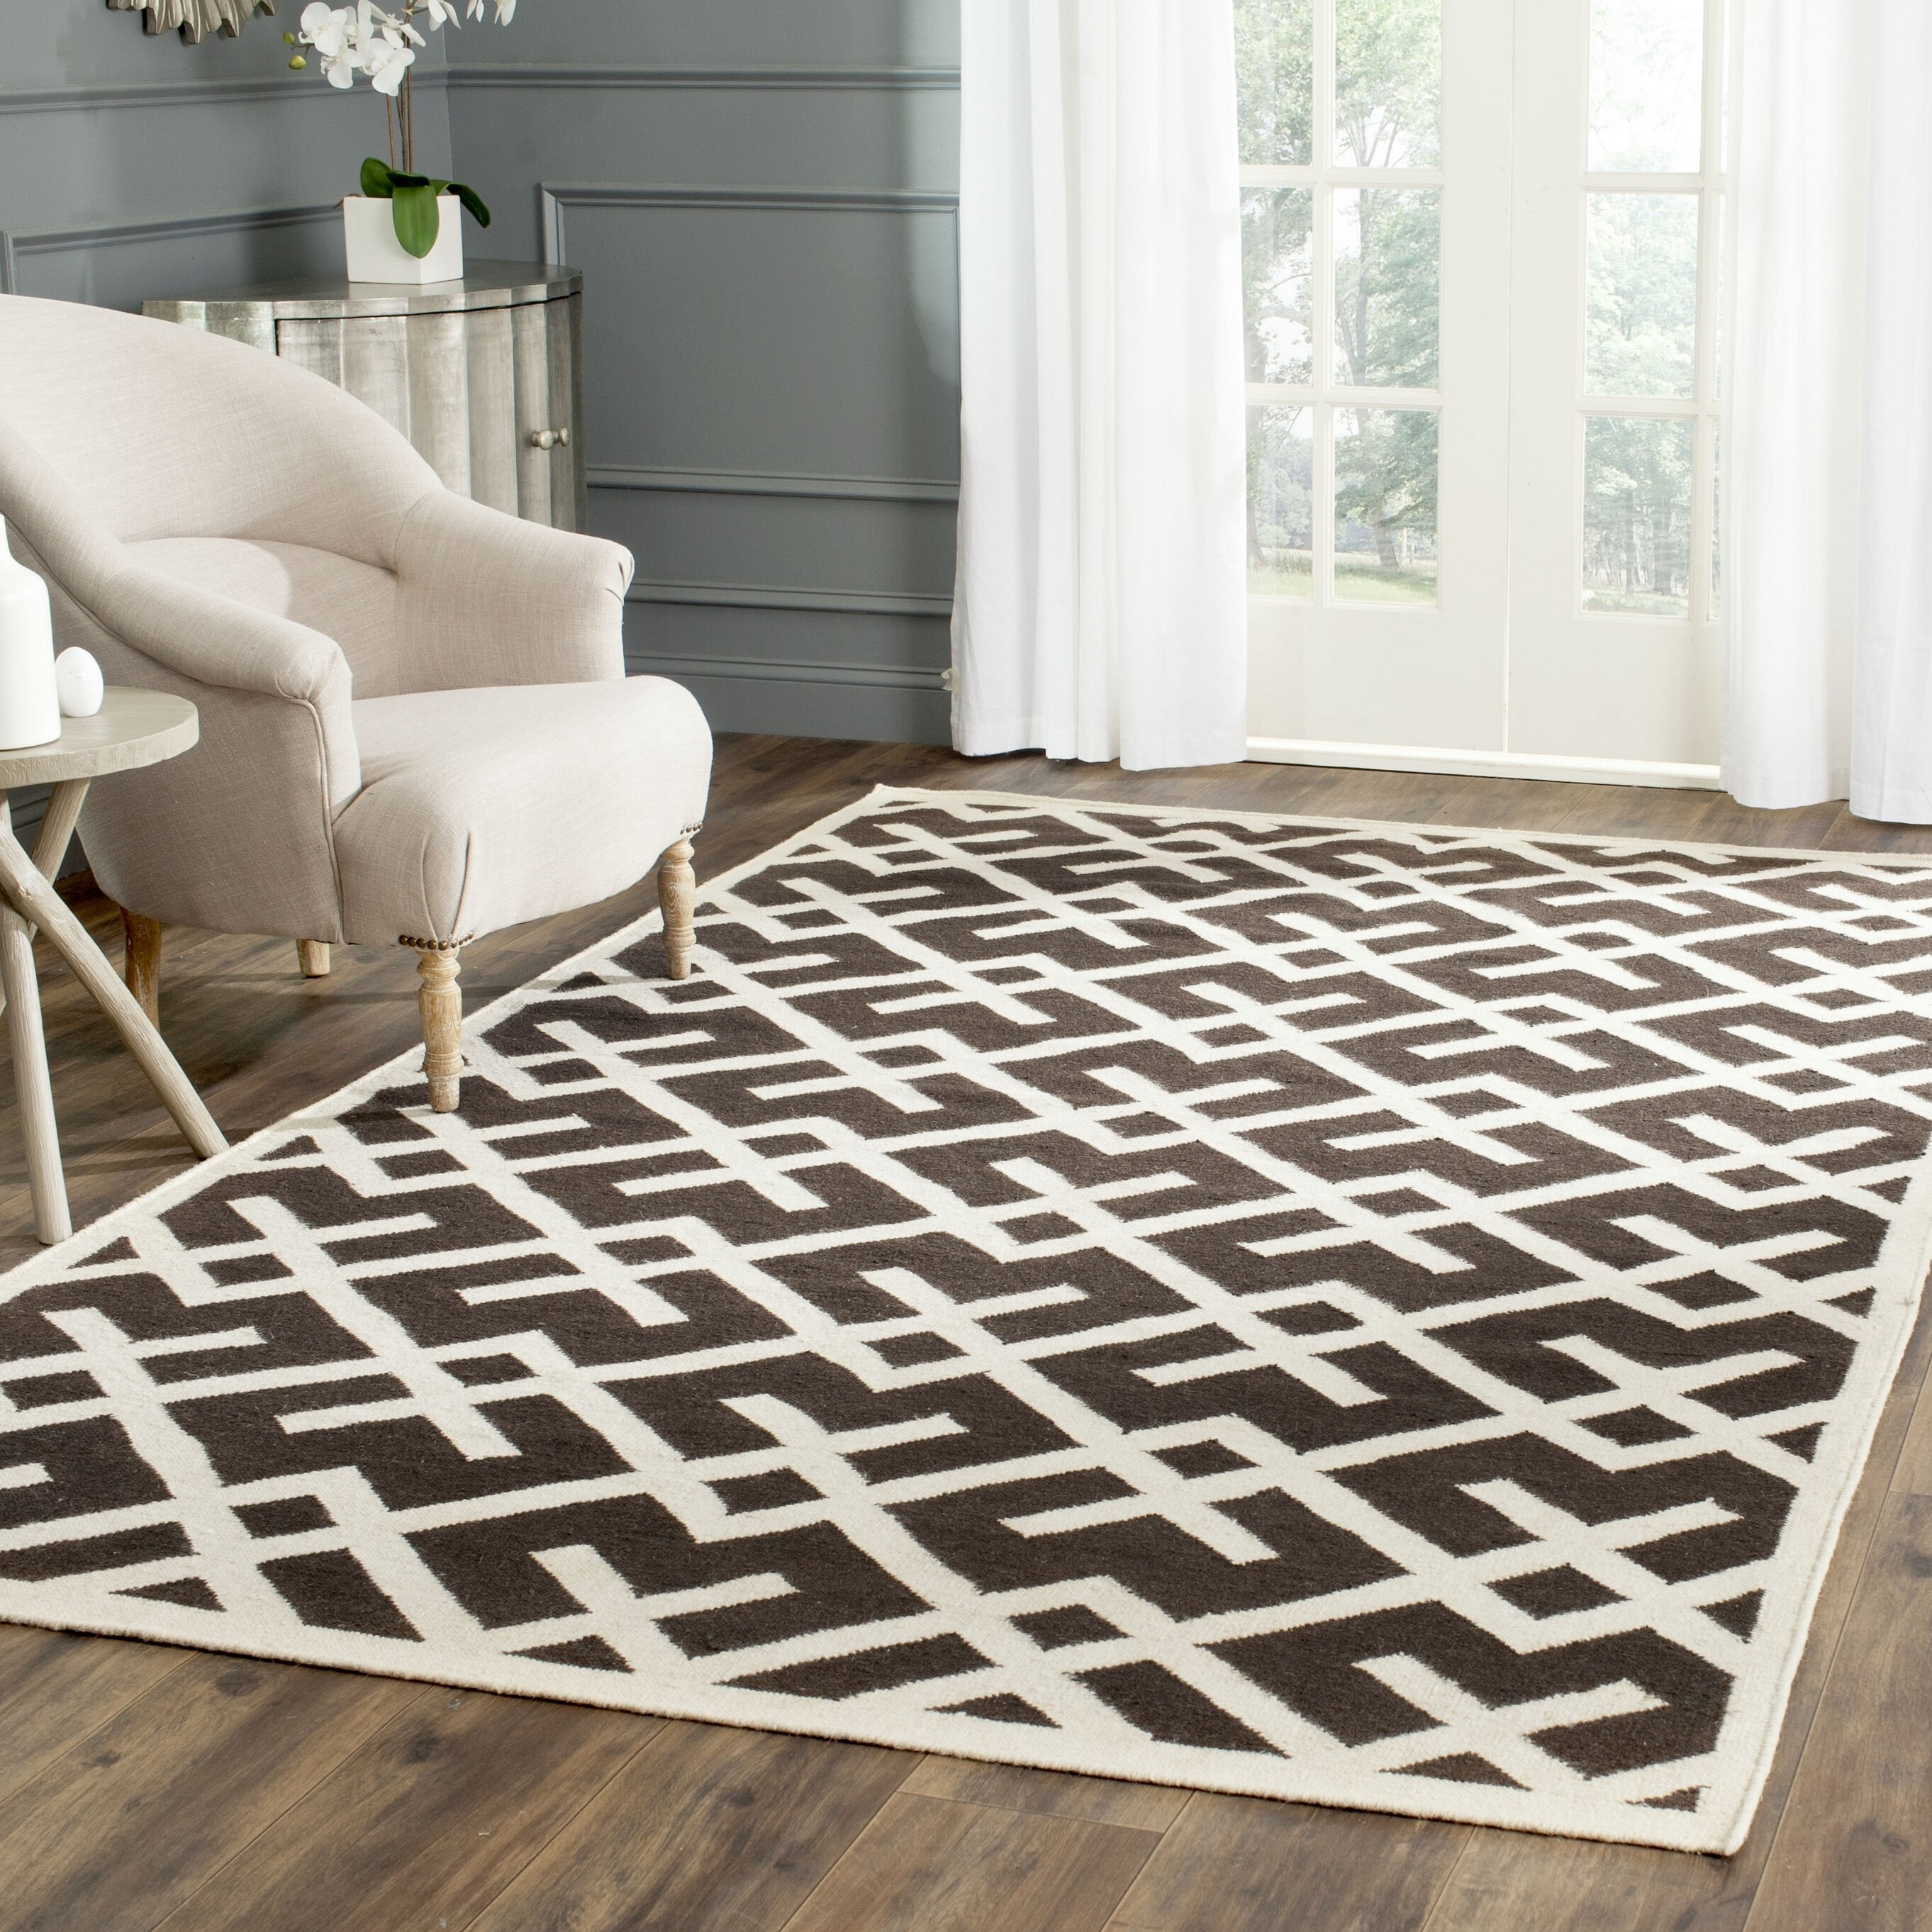 George Oliver Fung Handwoven Flatweave Wool Brown Ivory Area Rug Reviews Wayfair